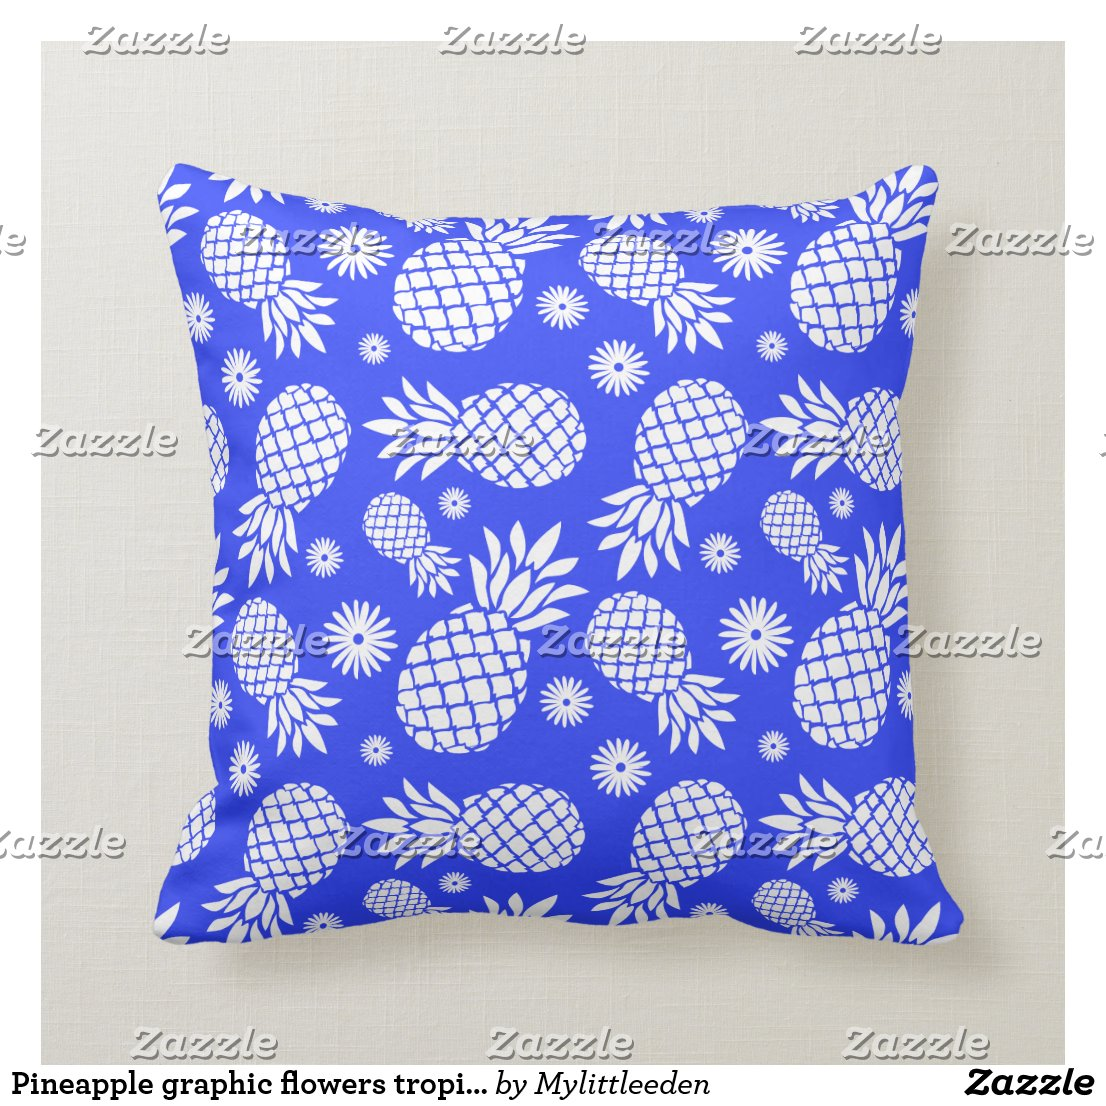 Pineapple graphic flowers tropical blue pillow